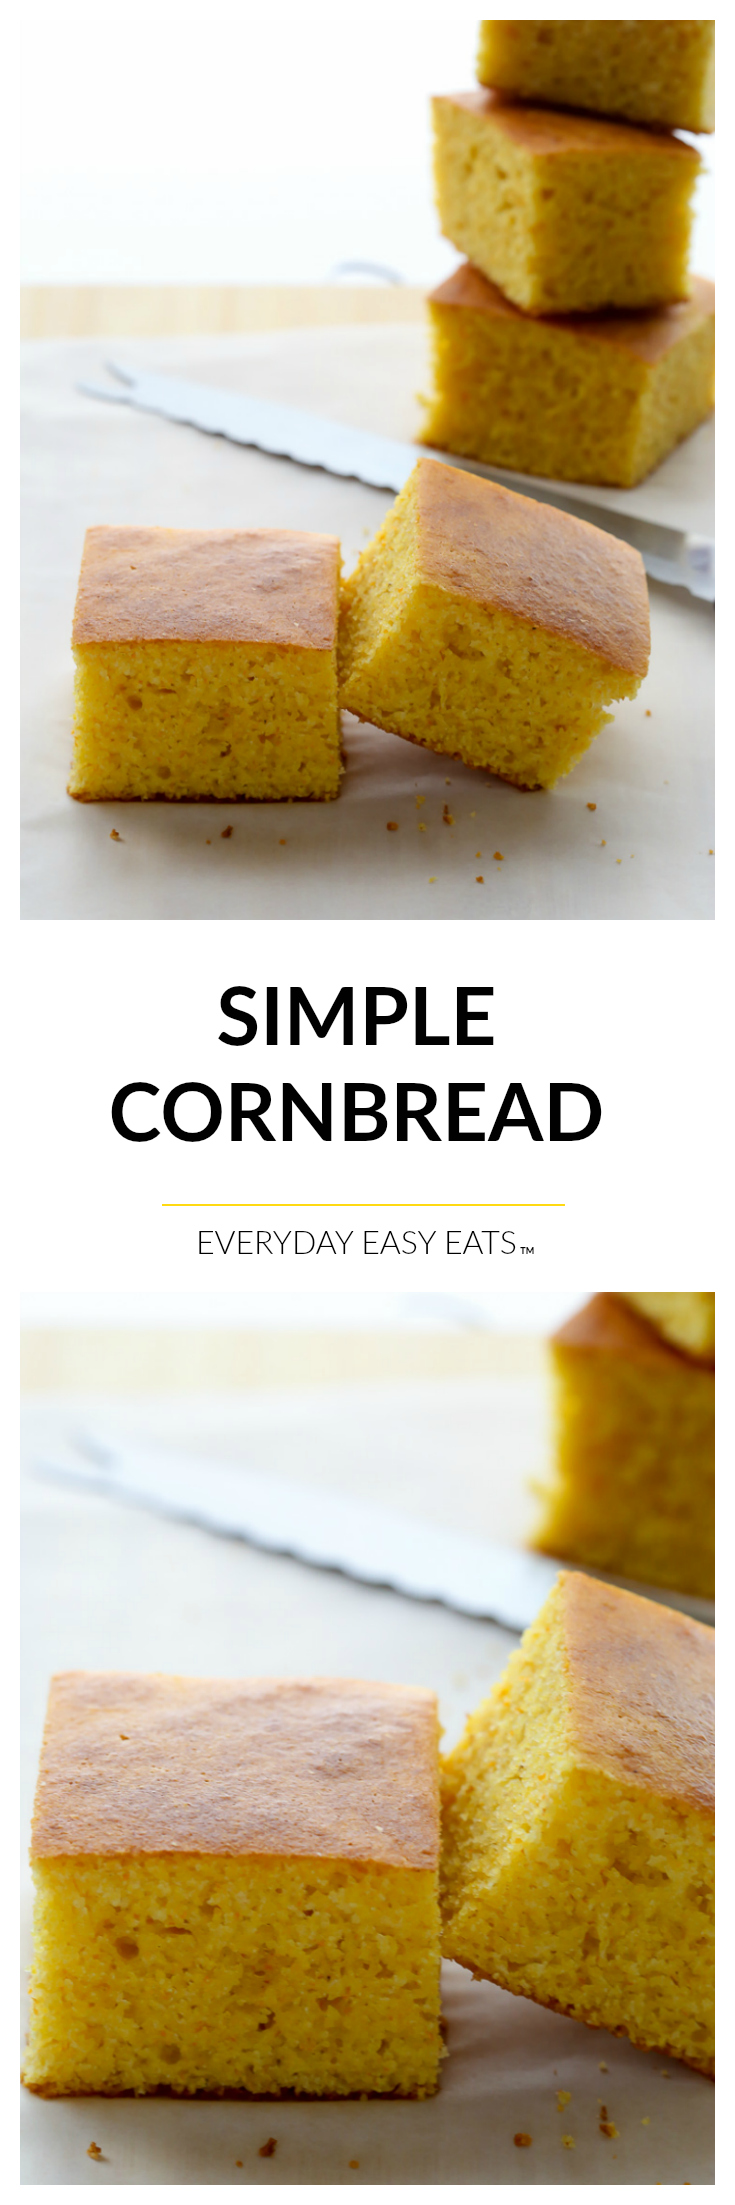 Simple Cornbread - A classic, lightly-sweet cornbread recipe that ...